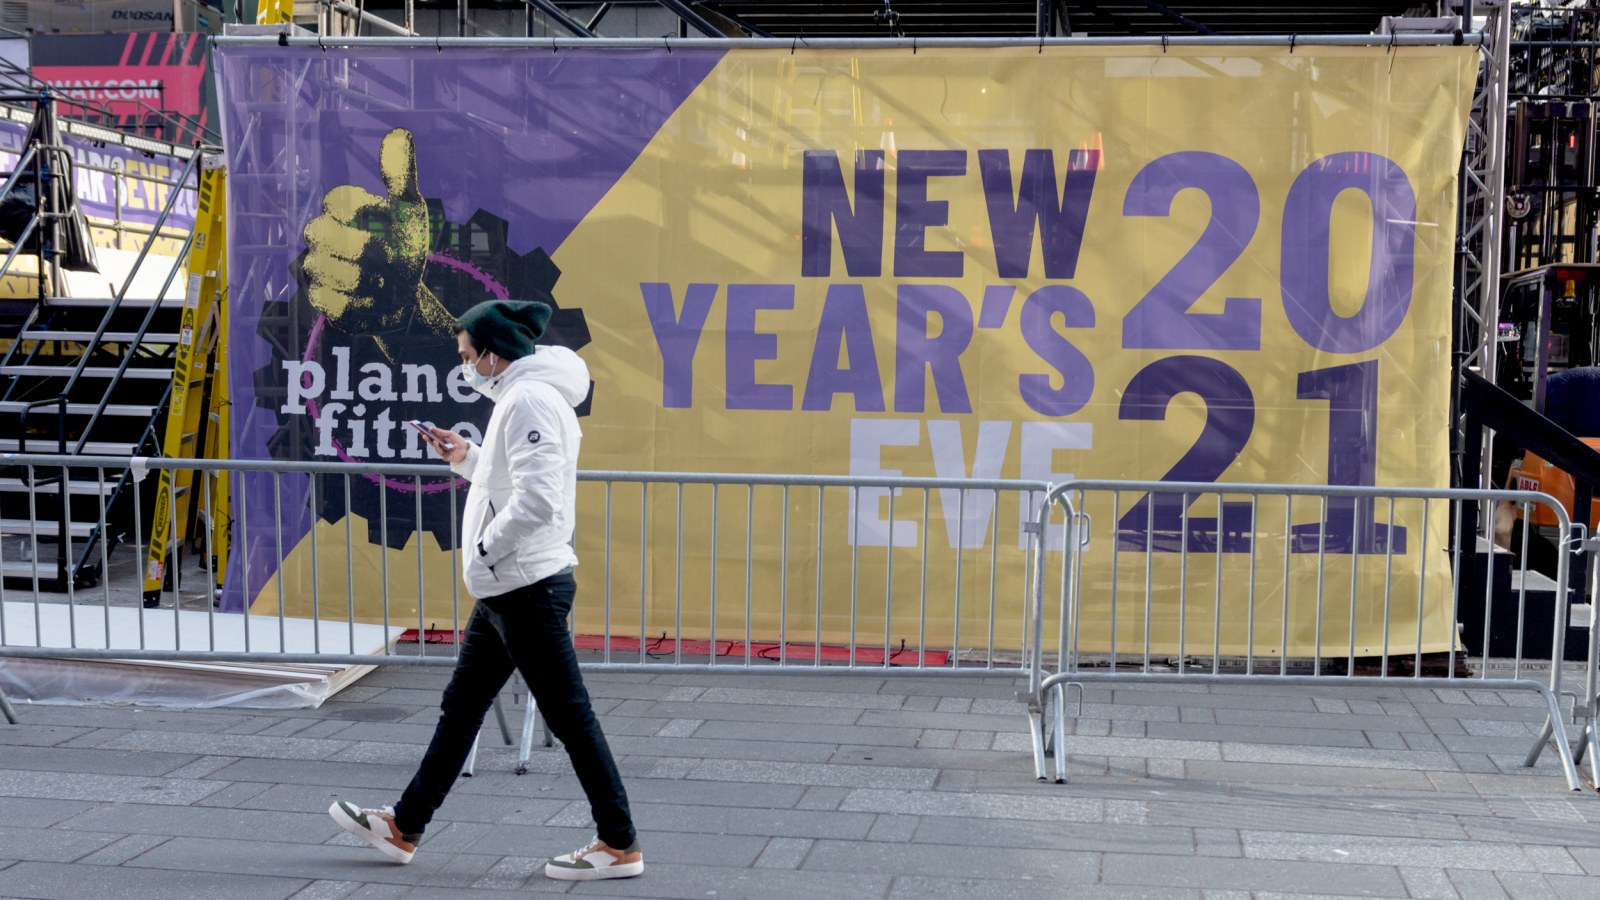 Auld Lang Syne Lyrics And Meaning Explained For 2021 Here out on the highway. newsweek